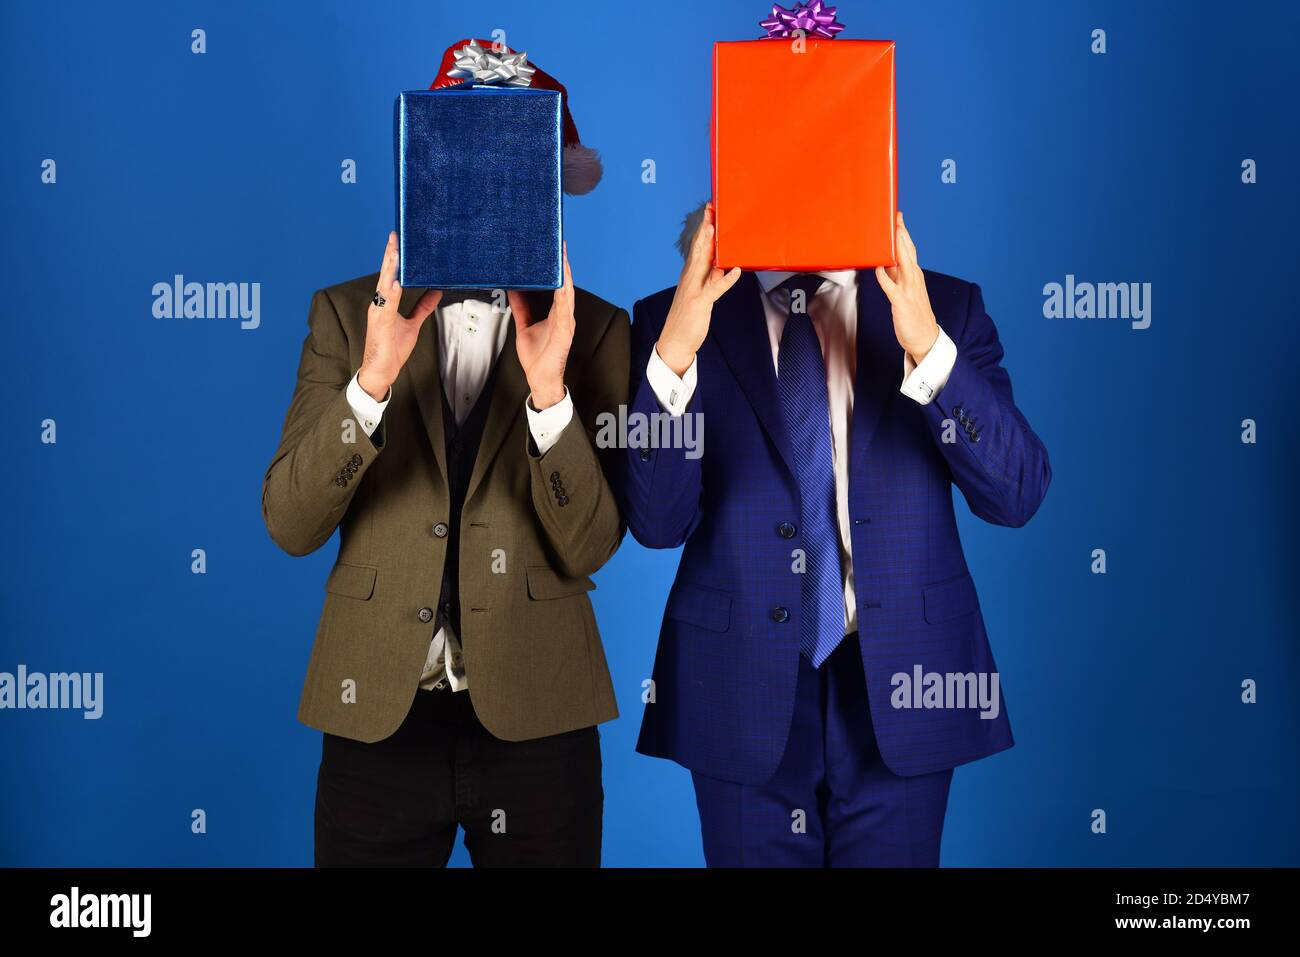 Businessmen Hide Faces Behind Red And Blue Present Boxes Managers And Christmas Gifts Men In Smart Suits And Santa Hats On Blue Background Christmas Shopping Concept Stock Photo Alamy